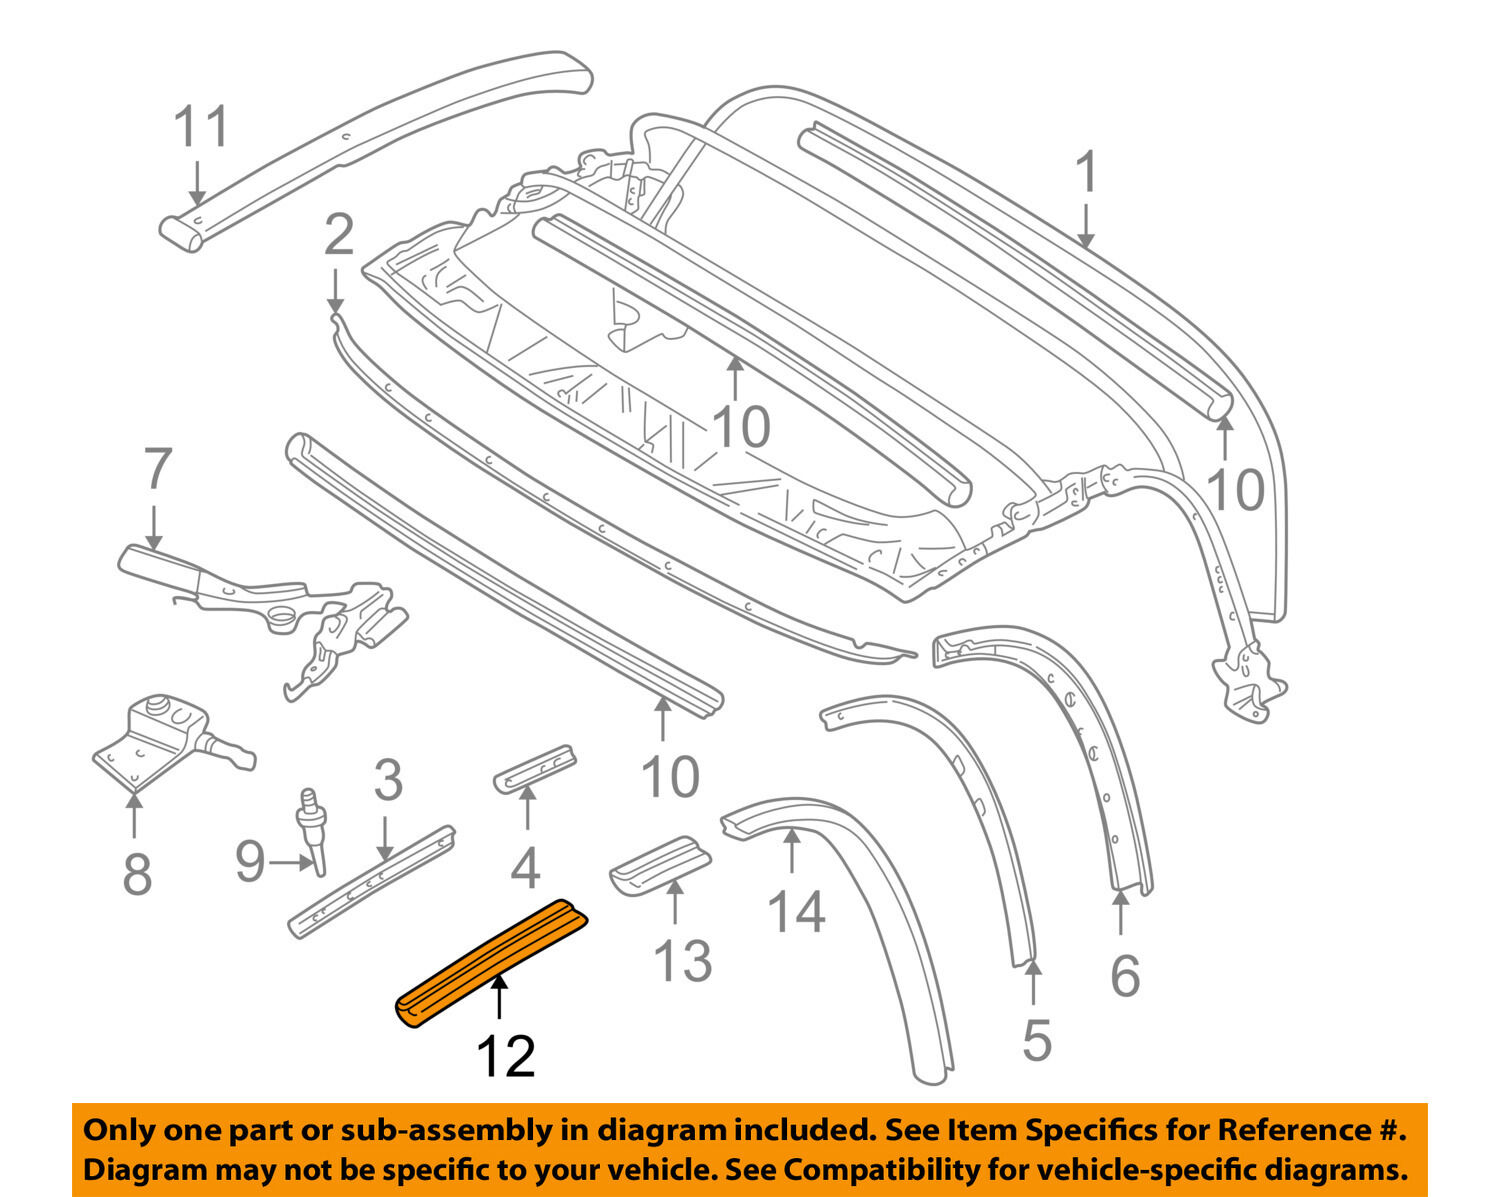 Bmw Oem 96 02 Z3 Convertible Soft Top Window Guide Left 54318397657 2 8 Engine Diagram 1 Of 2only Available